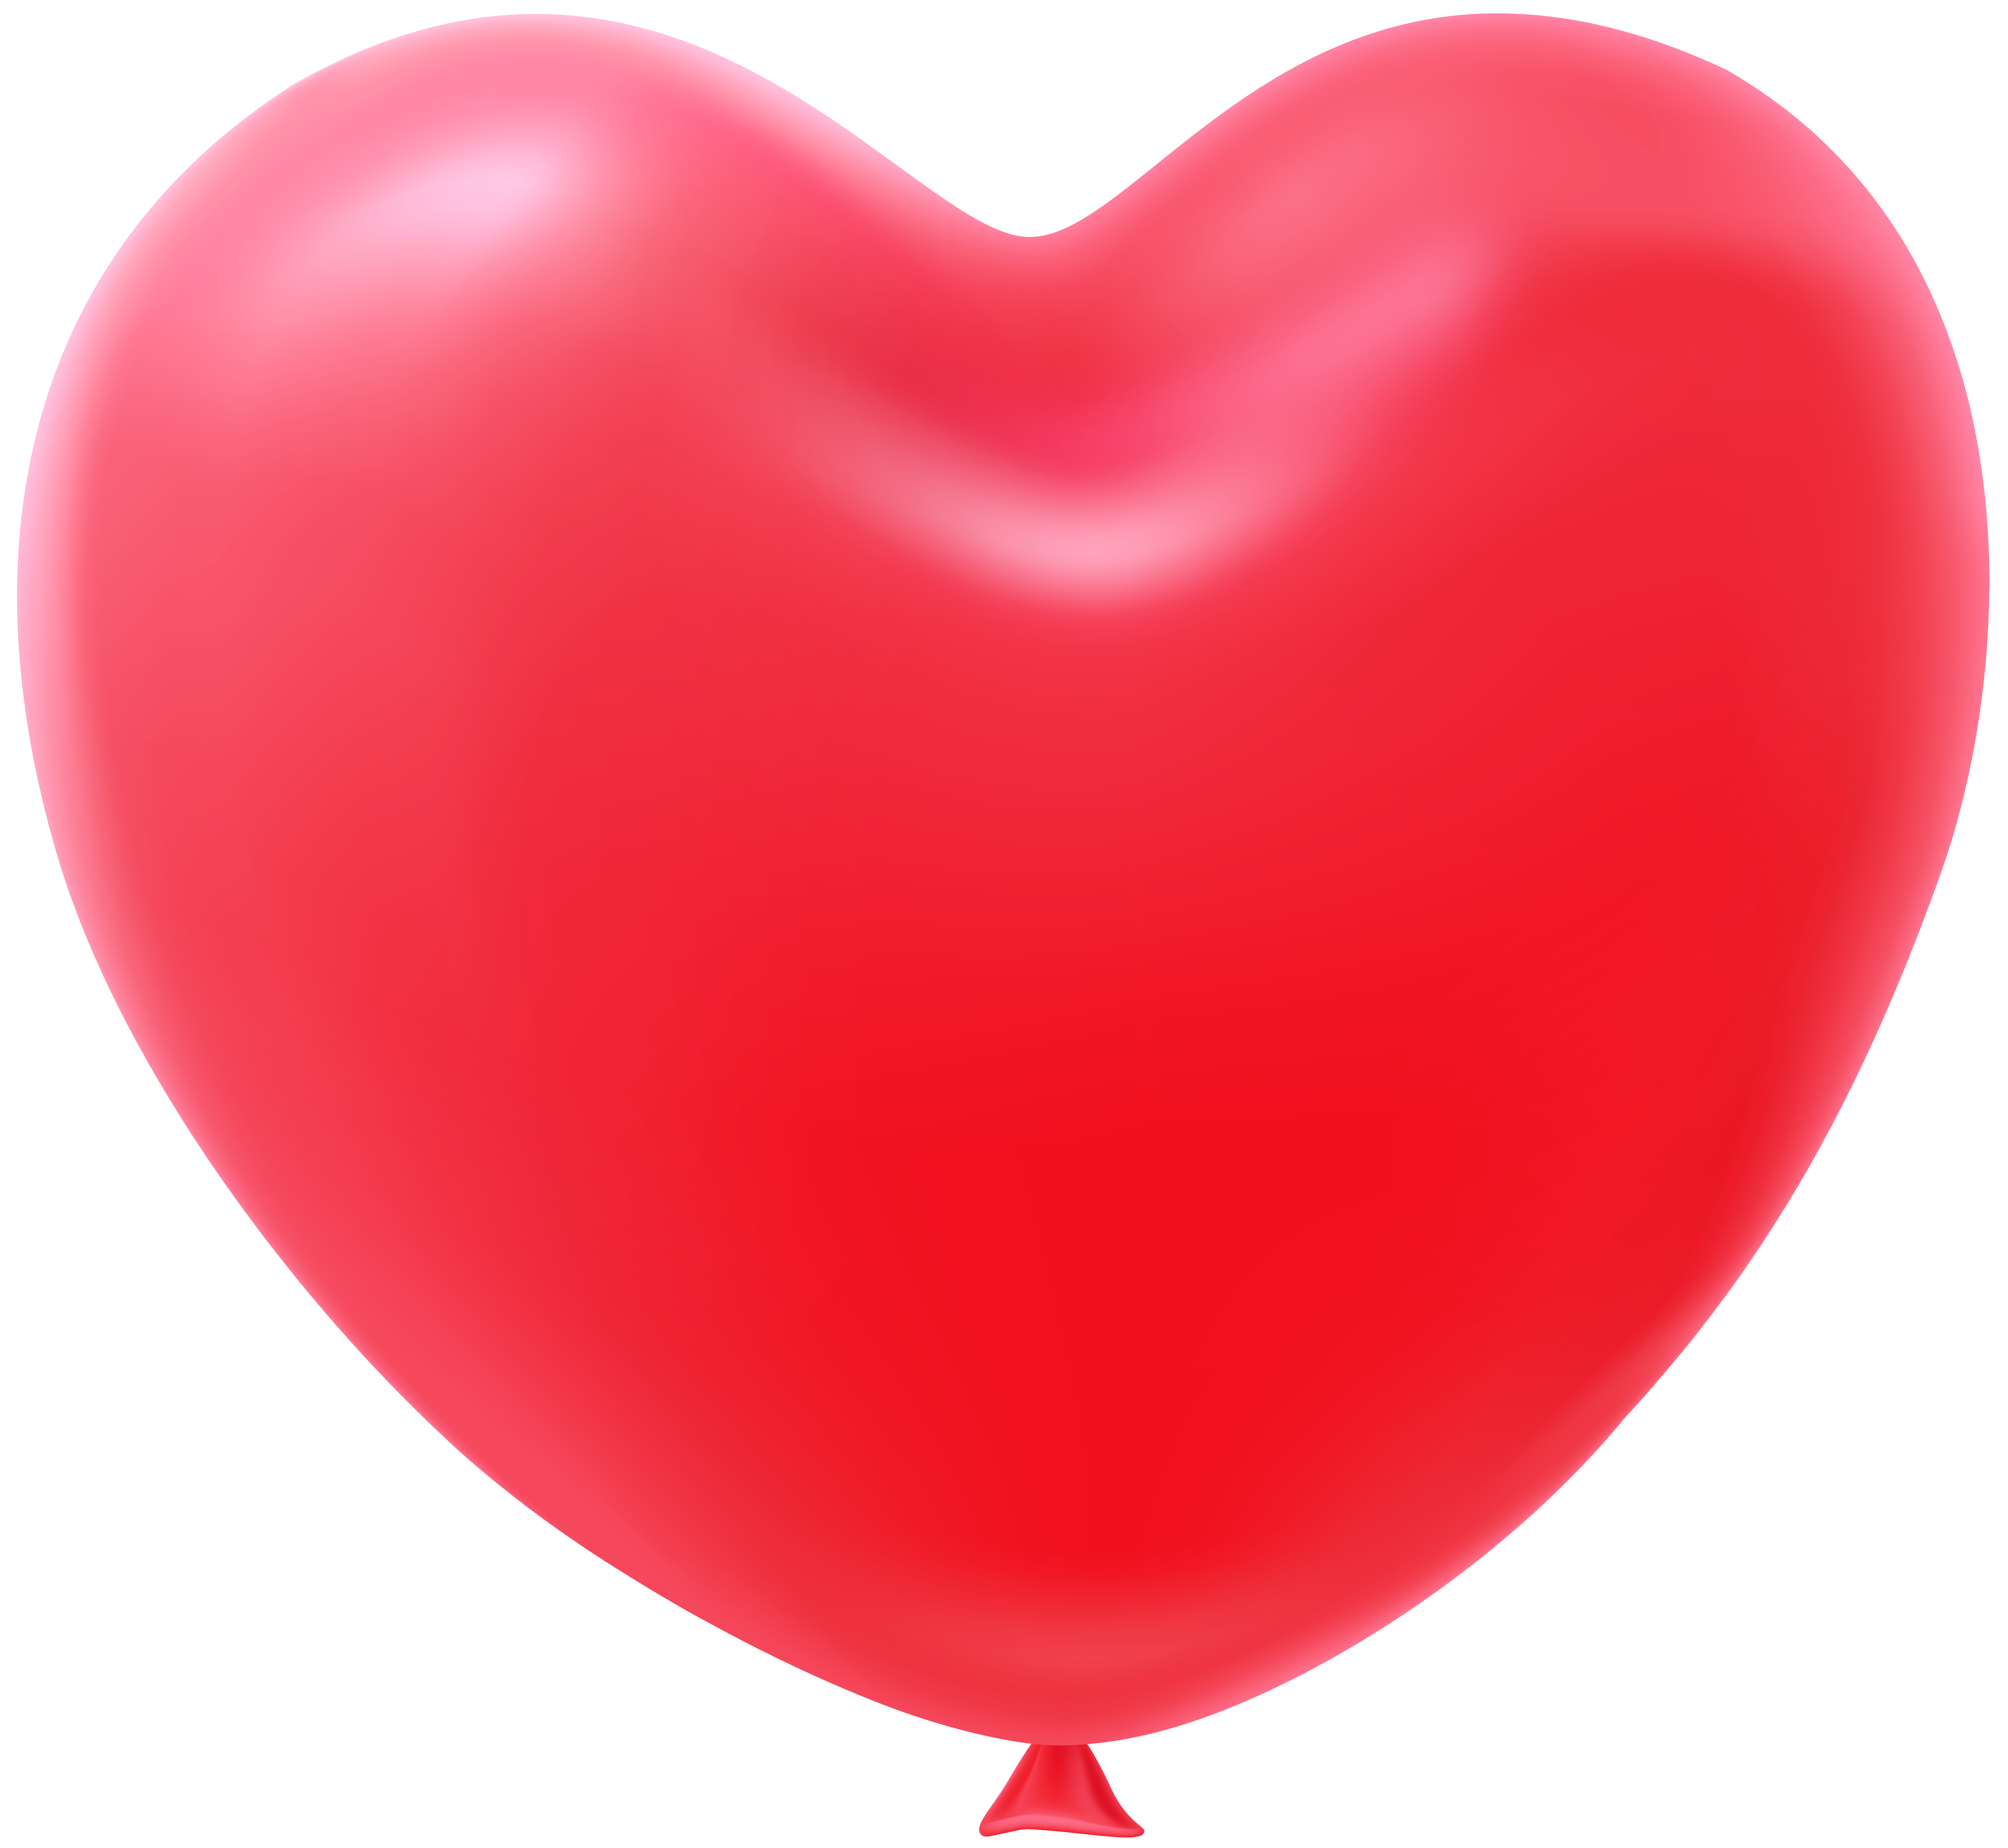 Heart shaped balloon clipart png royalty free Heart Shape Balloon Red Transparent Clip Art Image ... png royalty free